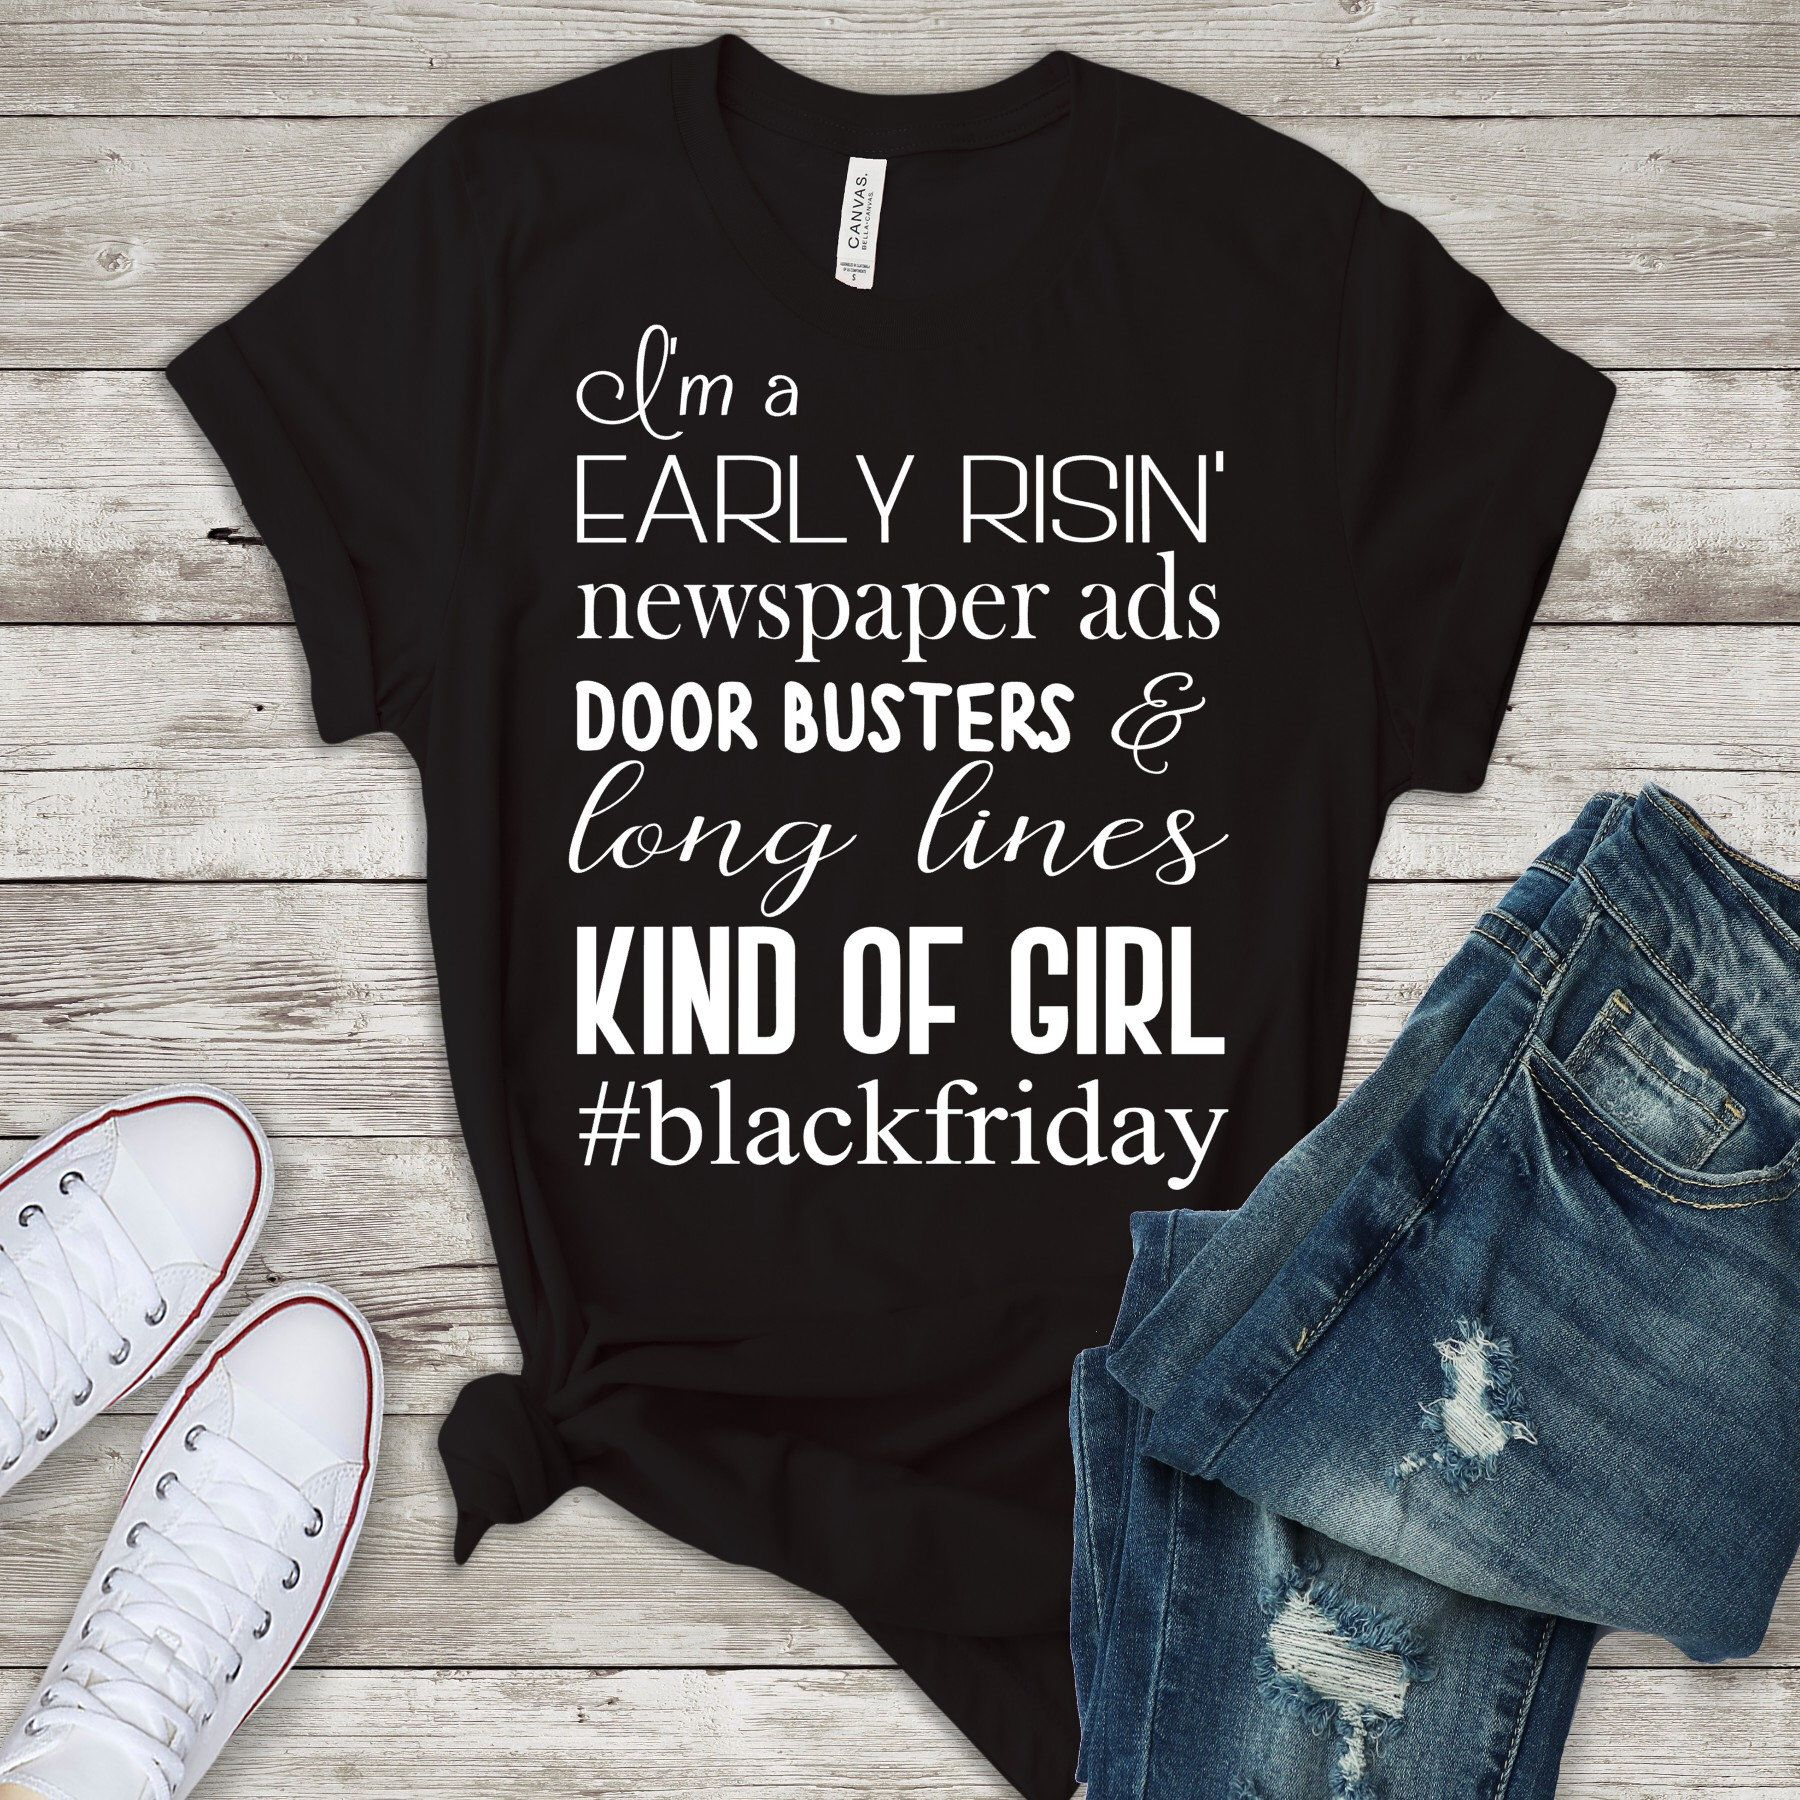 Black friday svg, #blackfriday, thanksgiving shirt, black friday jpeg, black friday kind of girl shirt